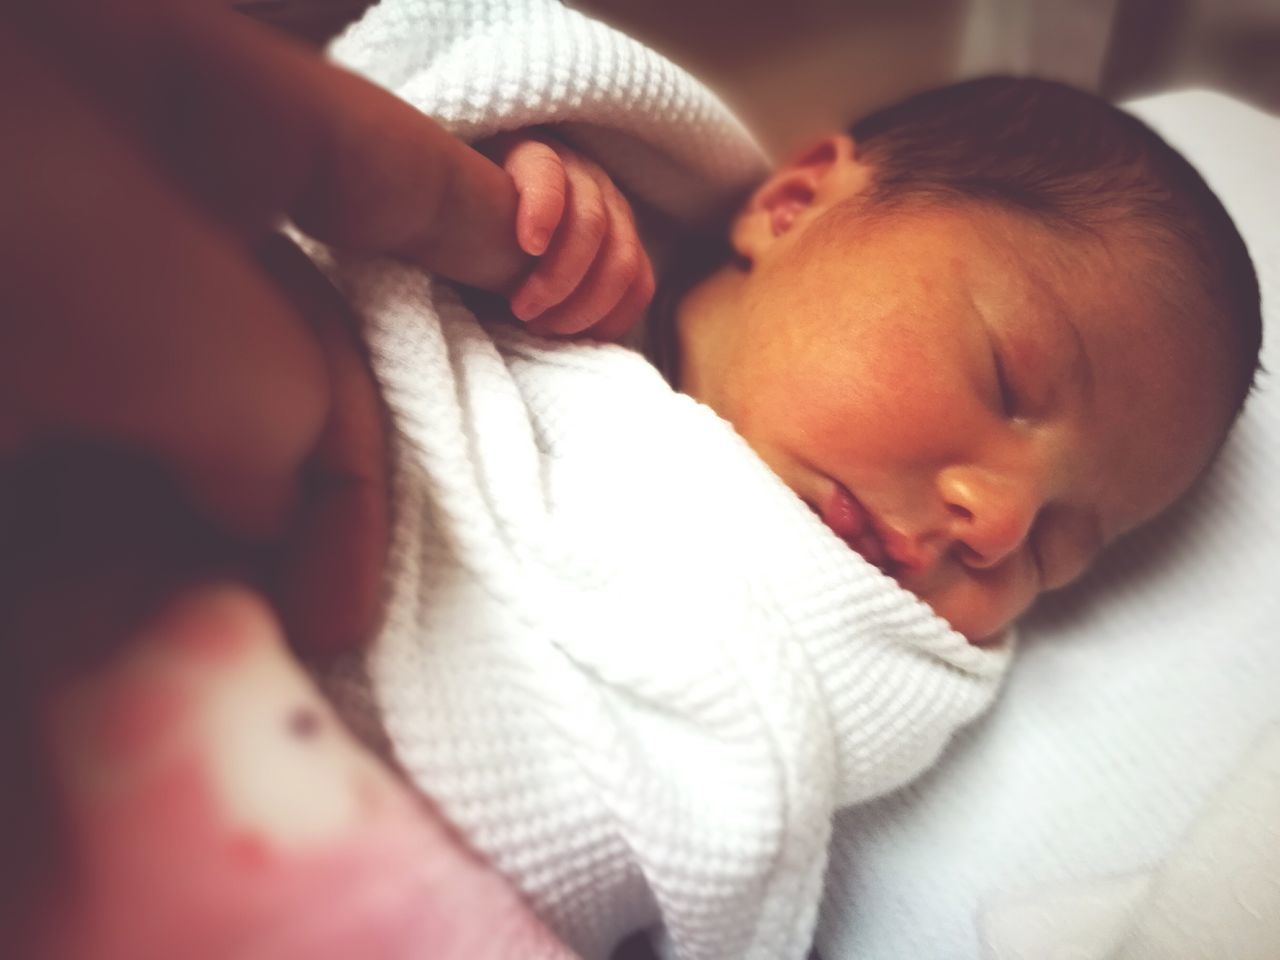 baby, newborn, babyhood, new life, sleeping, innocence, indoors, beginnings, real people, fragility, wrapped, close-up, cute, childhood, one person, babies only, day, people